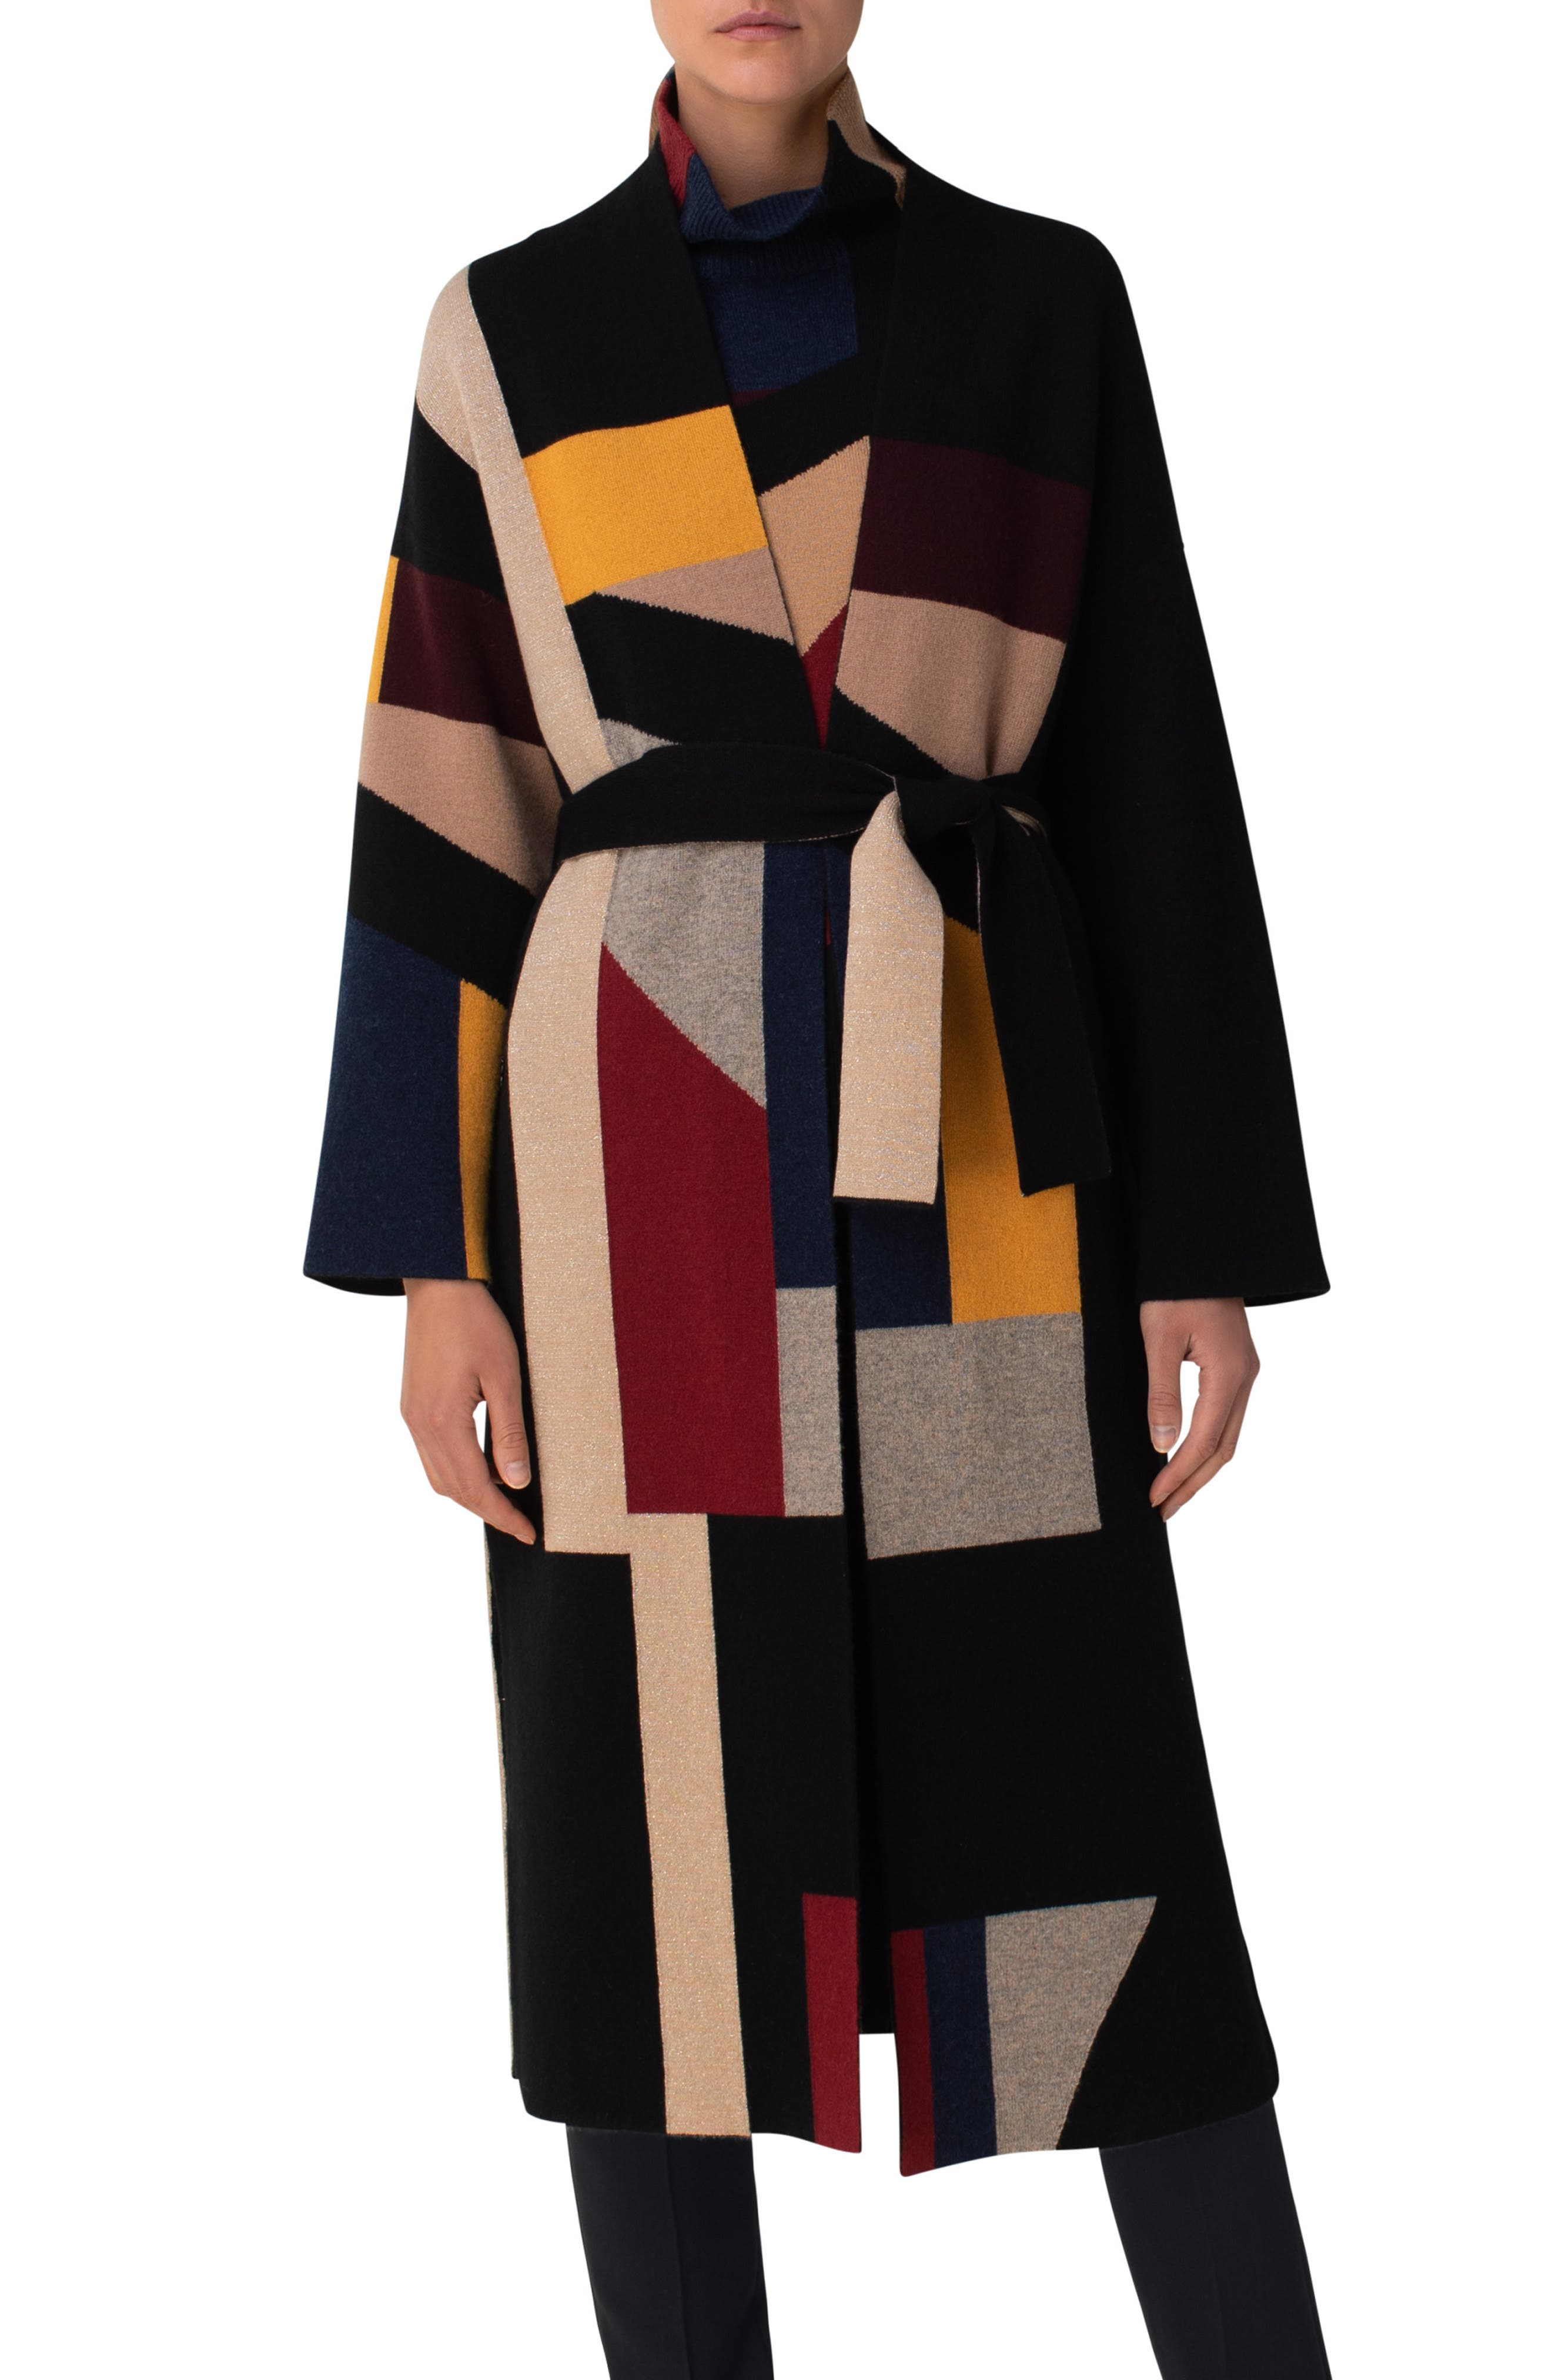 This double-face jacquard sweater-coat reverses from a striking cubist pattern to a solid hue, making it a versatile, timeless option for transitioning seasons. Style Name: Akris Belted Reversible Sweater Coat. Style Number: 6049520. Available in stores.